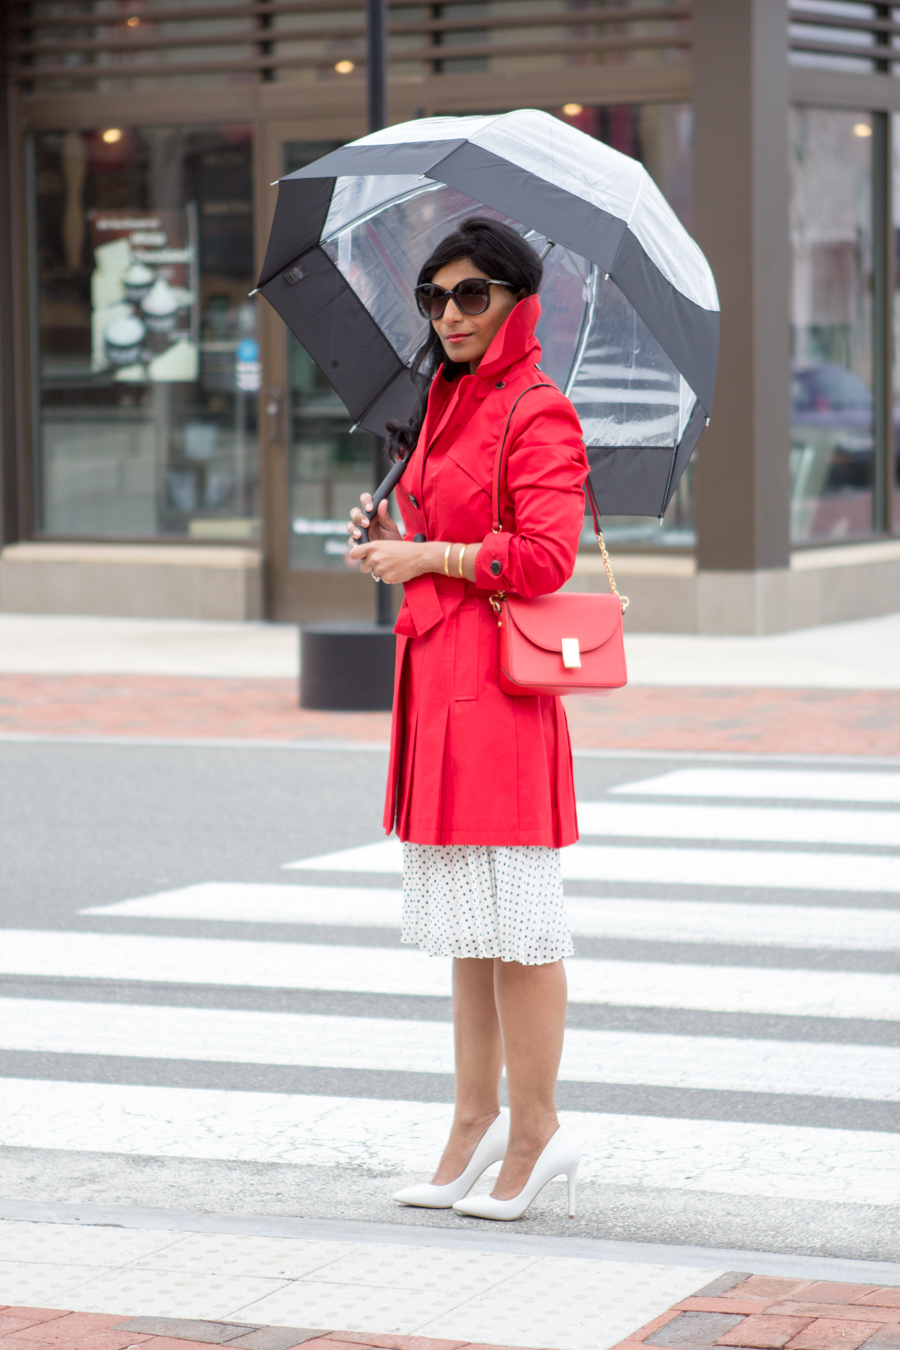 rainy day style, trench coat, red coat, raincoat, single-breasted trench, bright red coat, petite raincoat, red bag, cross-body bag, flynn, hunter, rainwear, mommy style, mom style, elegant look, chic, street style, white pumps, polka dot